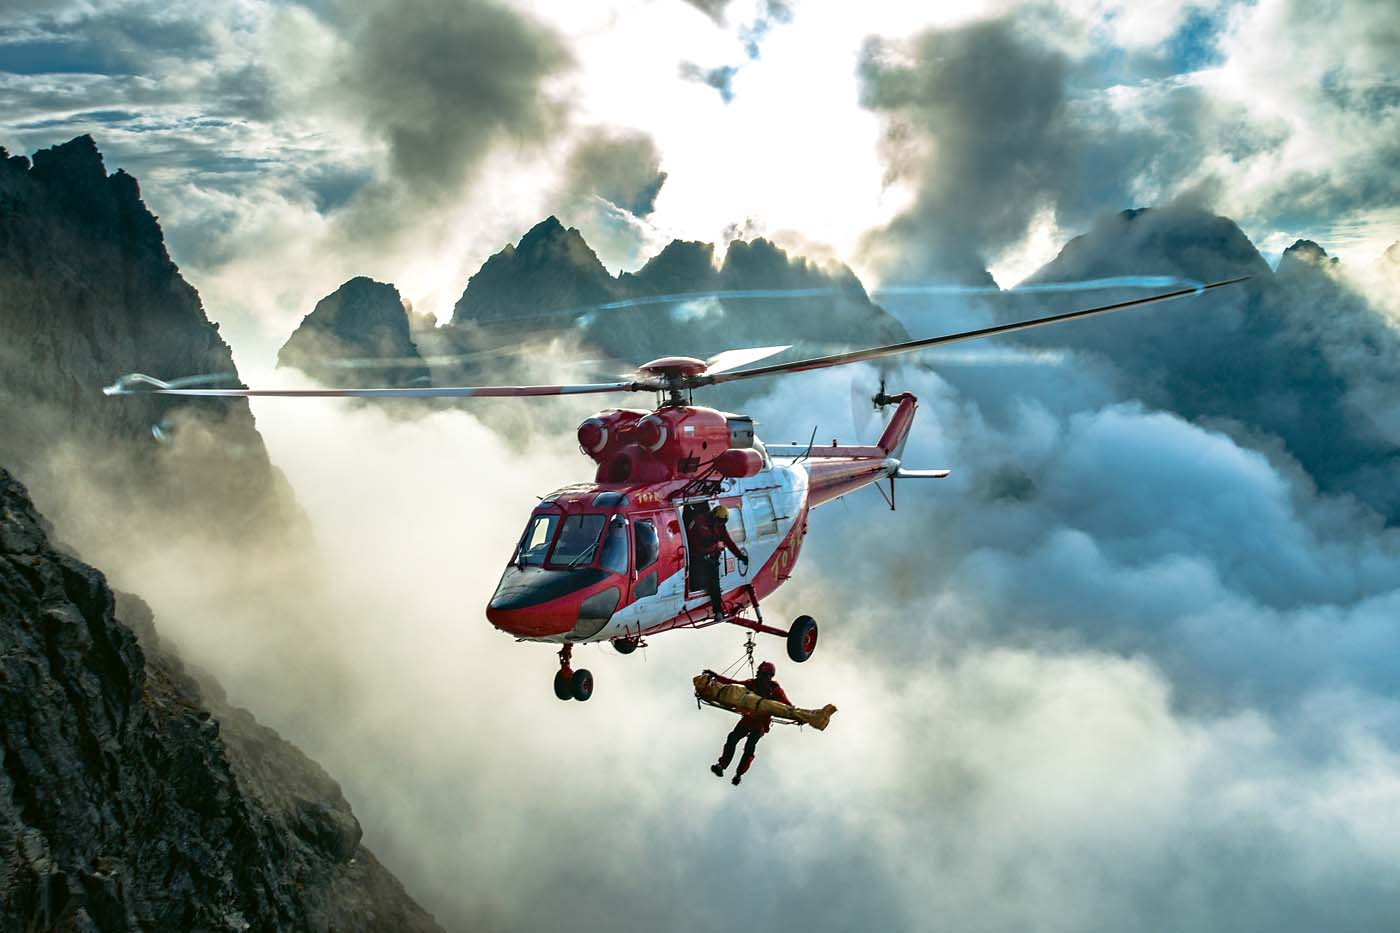 The Grand Prize winner of the 2018 Vertical Photo Contest: A PZL W-3A Sokół, operated by the Tatra Mountain rescue service (TOPR), flies a rescue mission on Rysy, the highest peak in Poland. Photo by Maciej Mikiewicz.